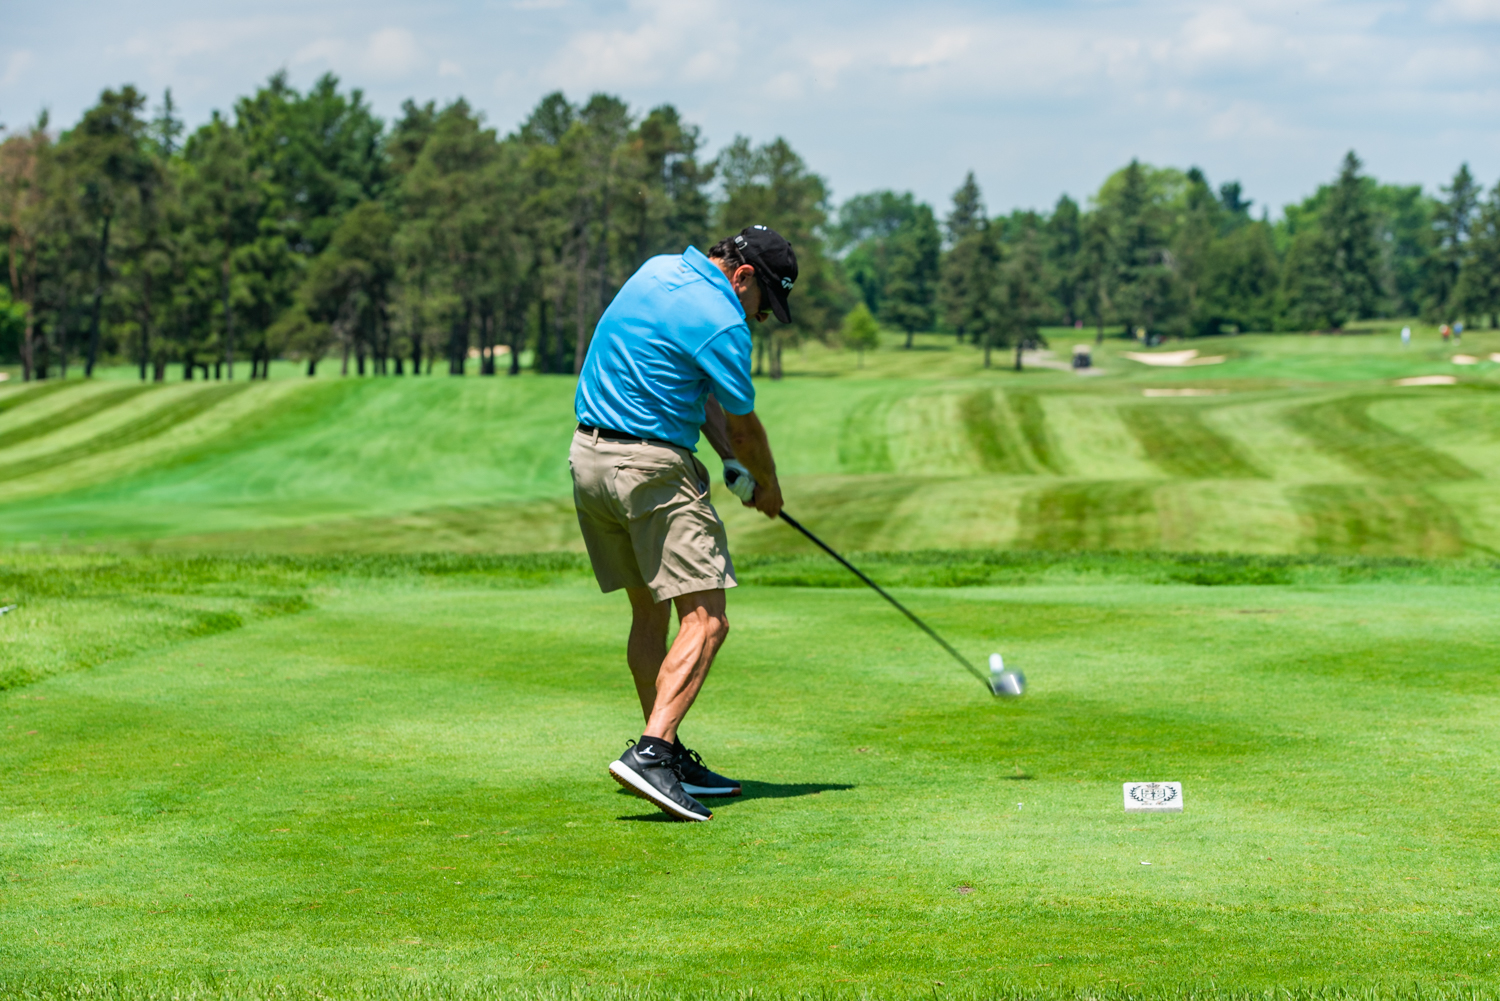 T1DTTN_Golf Tournament 2019_Web-17.jpg